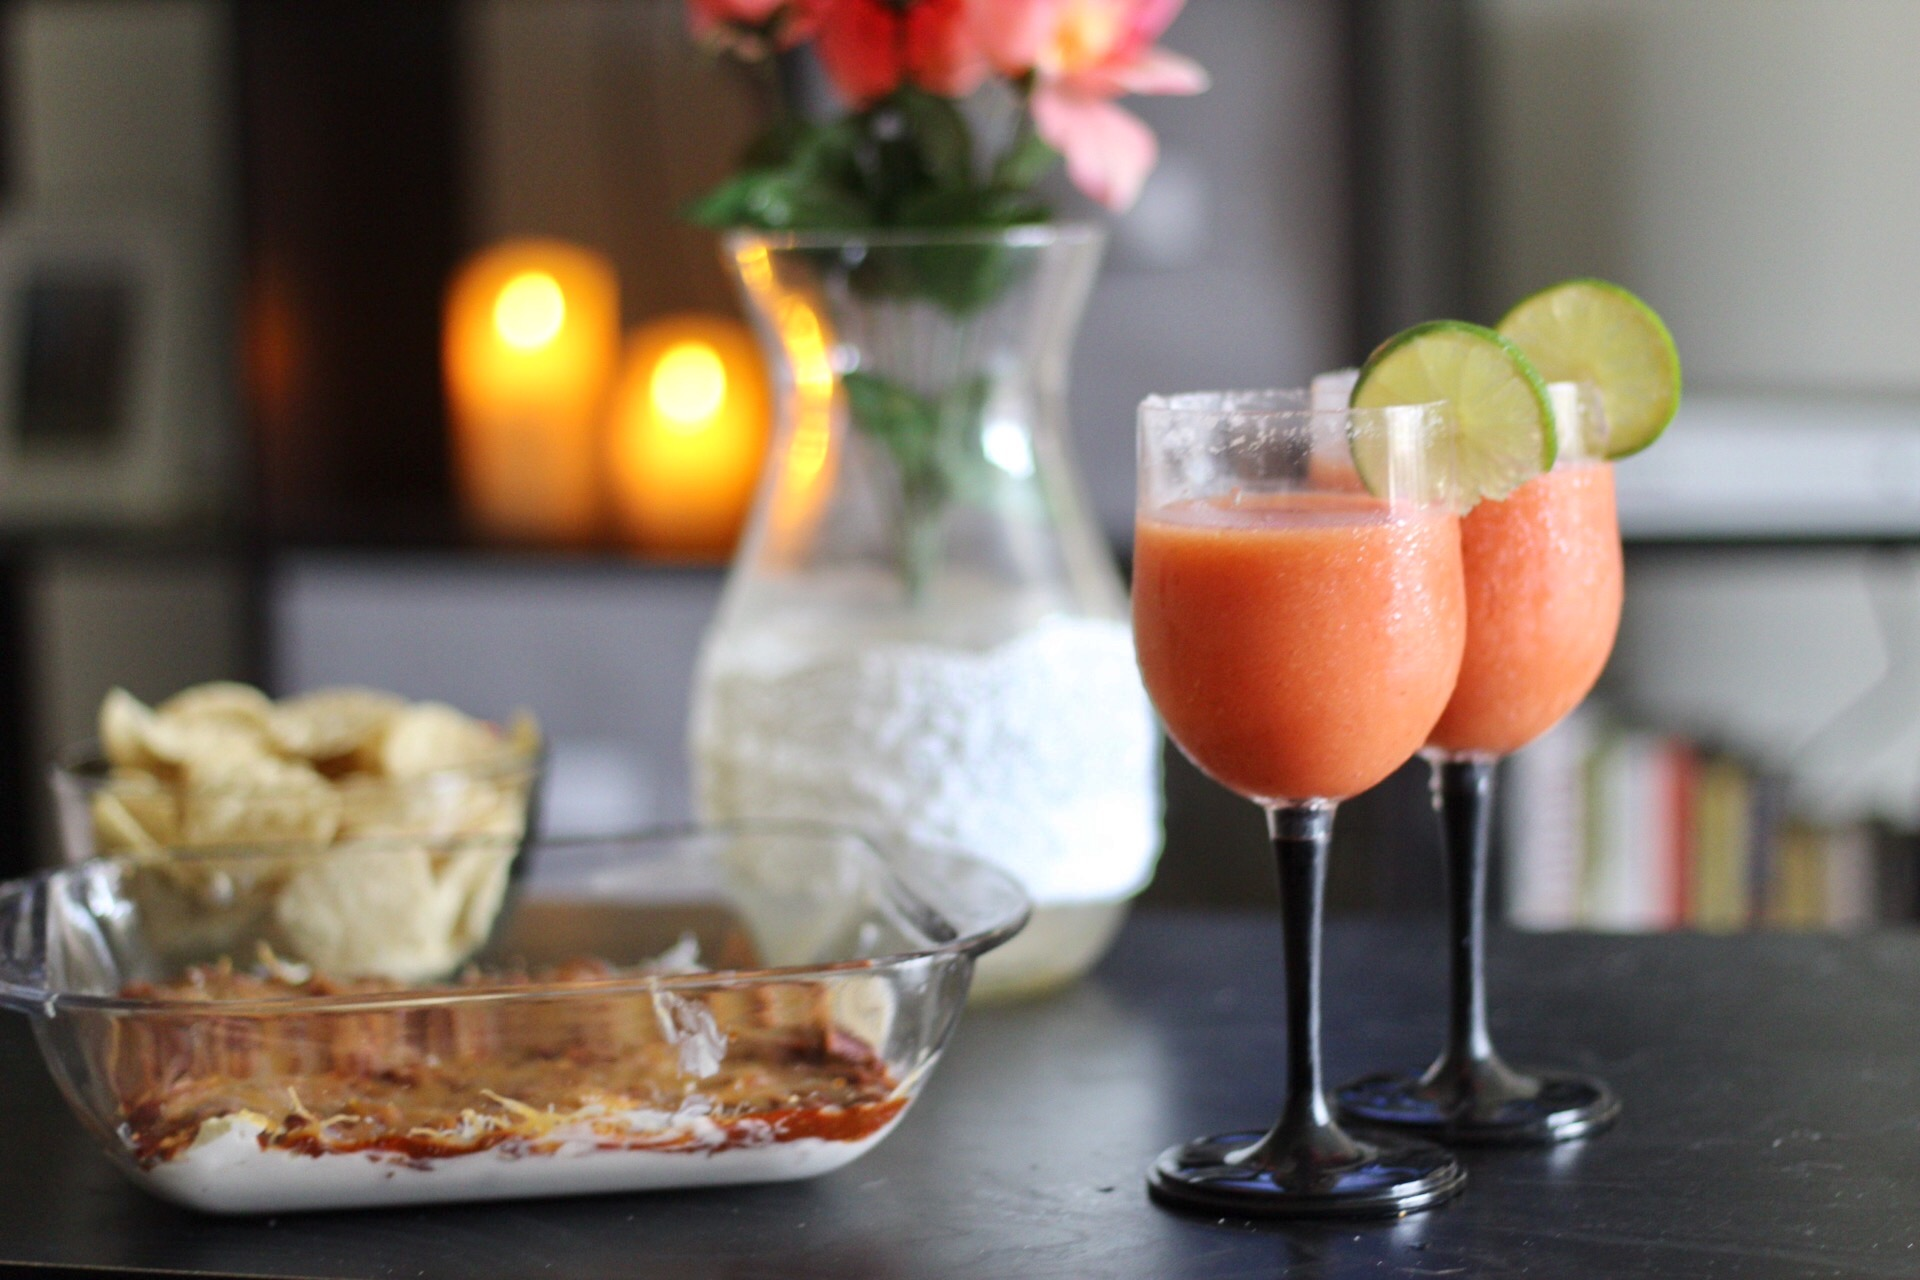 Queen of the South Inspired Cocktails and Treats